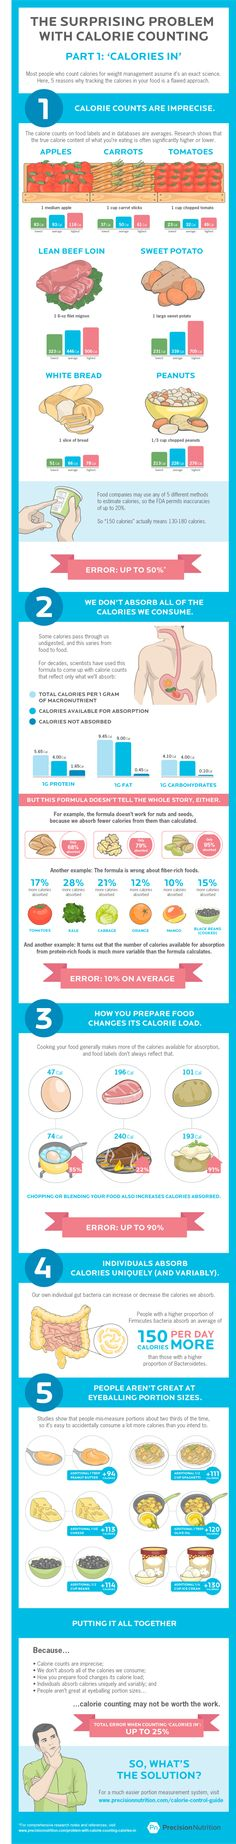 These Infographics Show the Problems With Calorie Counting